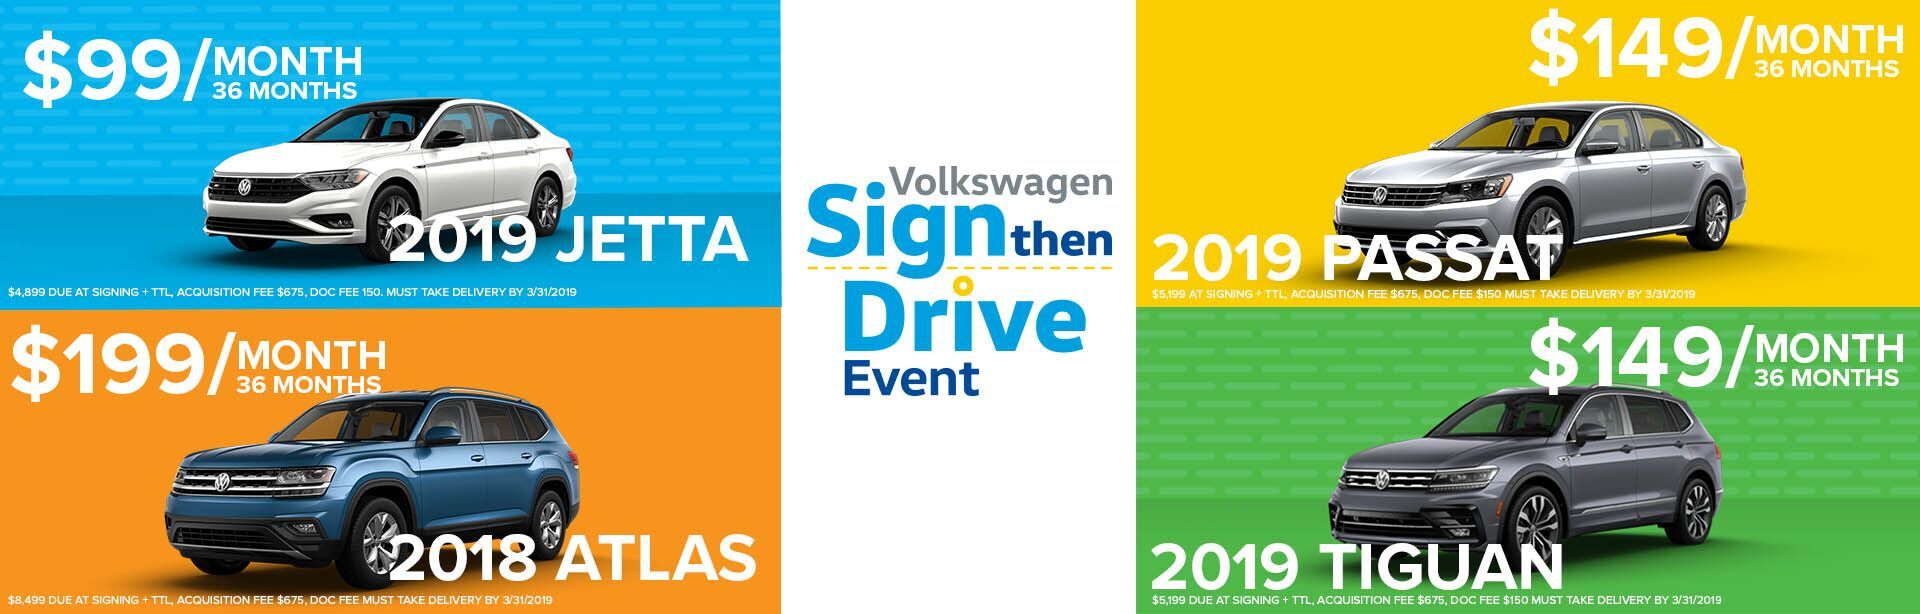 SignThenDrive Event